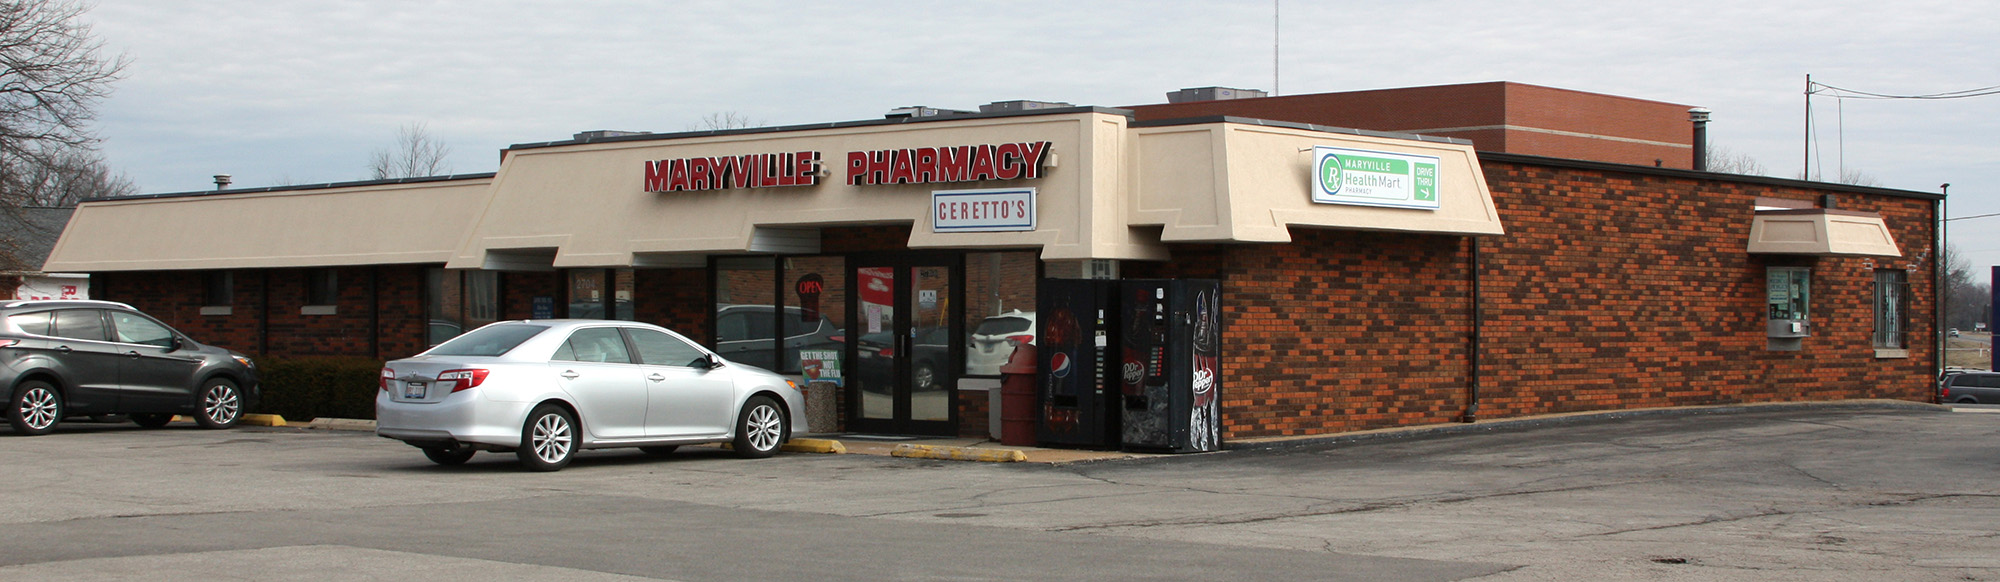 Maryville Pharmacy is Located at 2700 N. Center in Maryville, Illinois